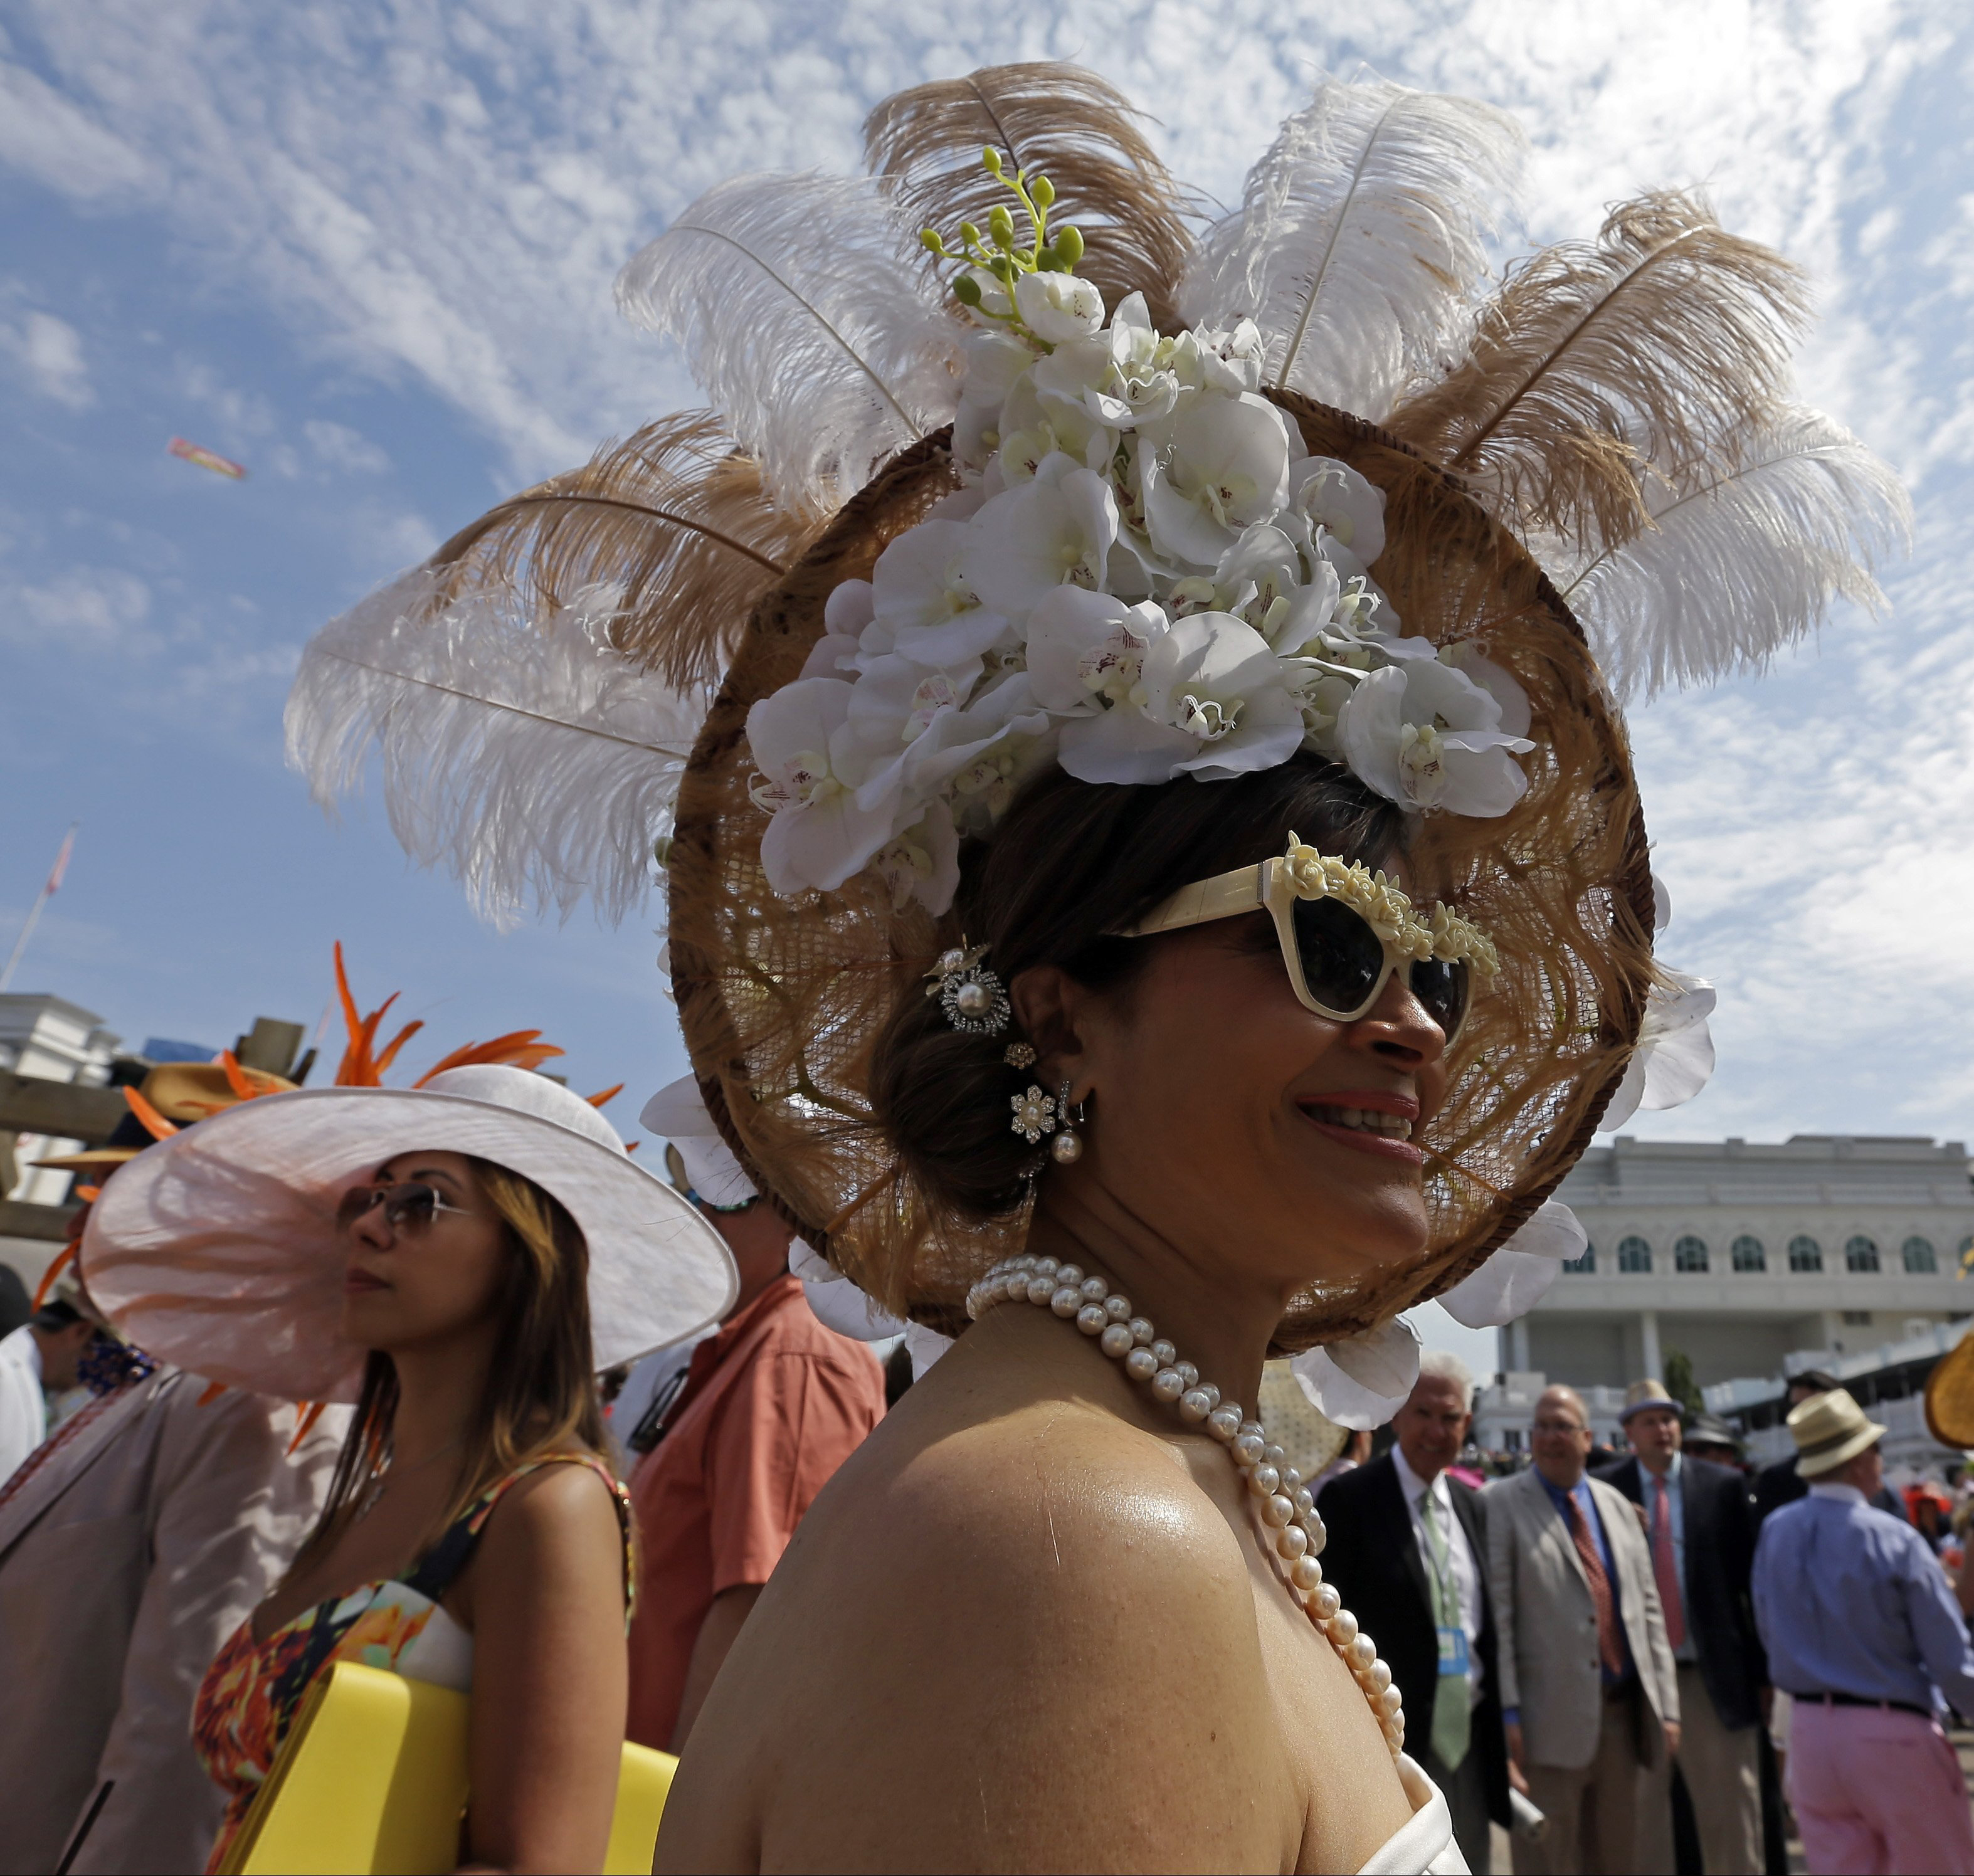 Woman with a hat during the 141st running of the Kentucky Oaks horse race at Churchill Downs on May 2, 2015, in Louisville, Ky.